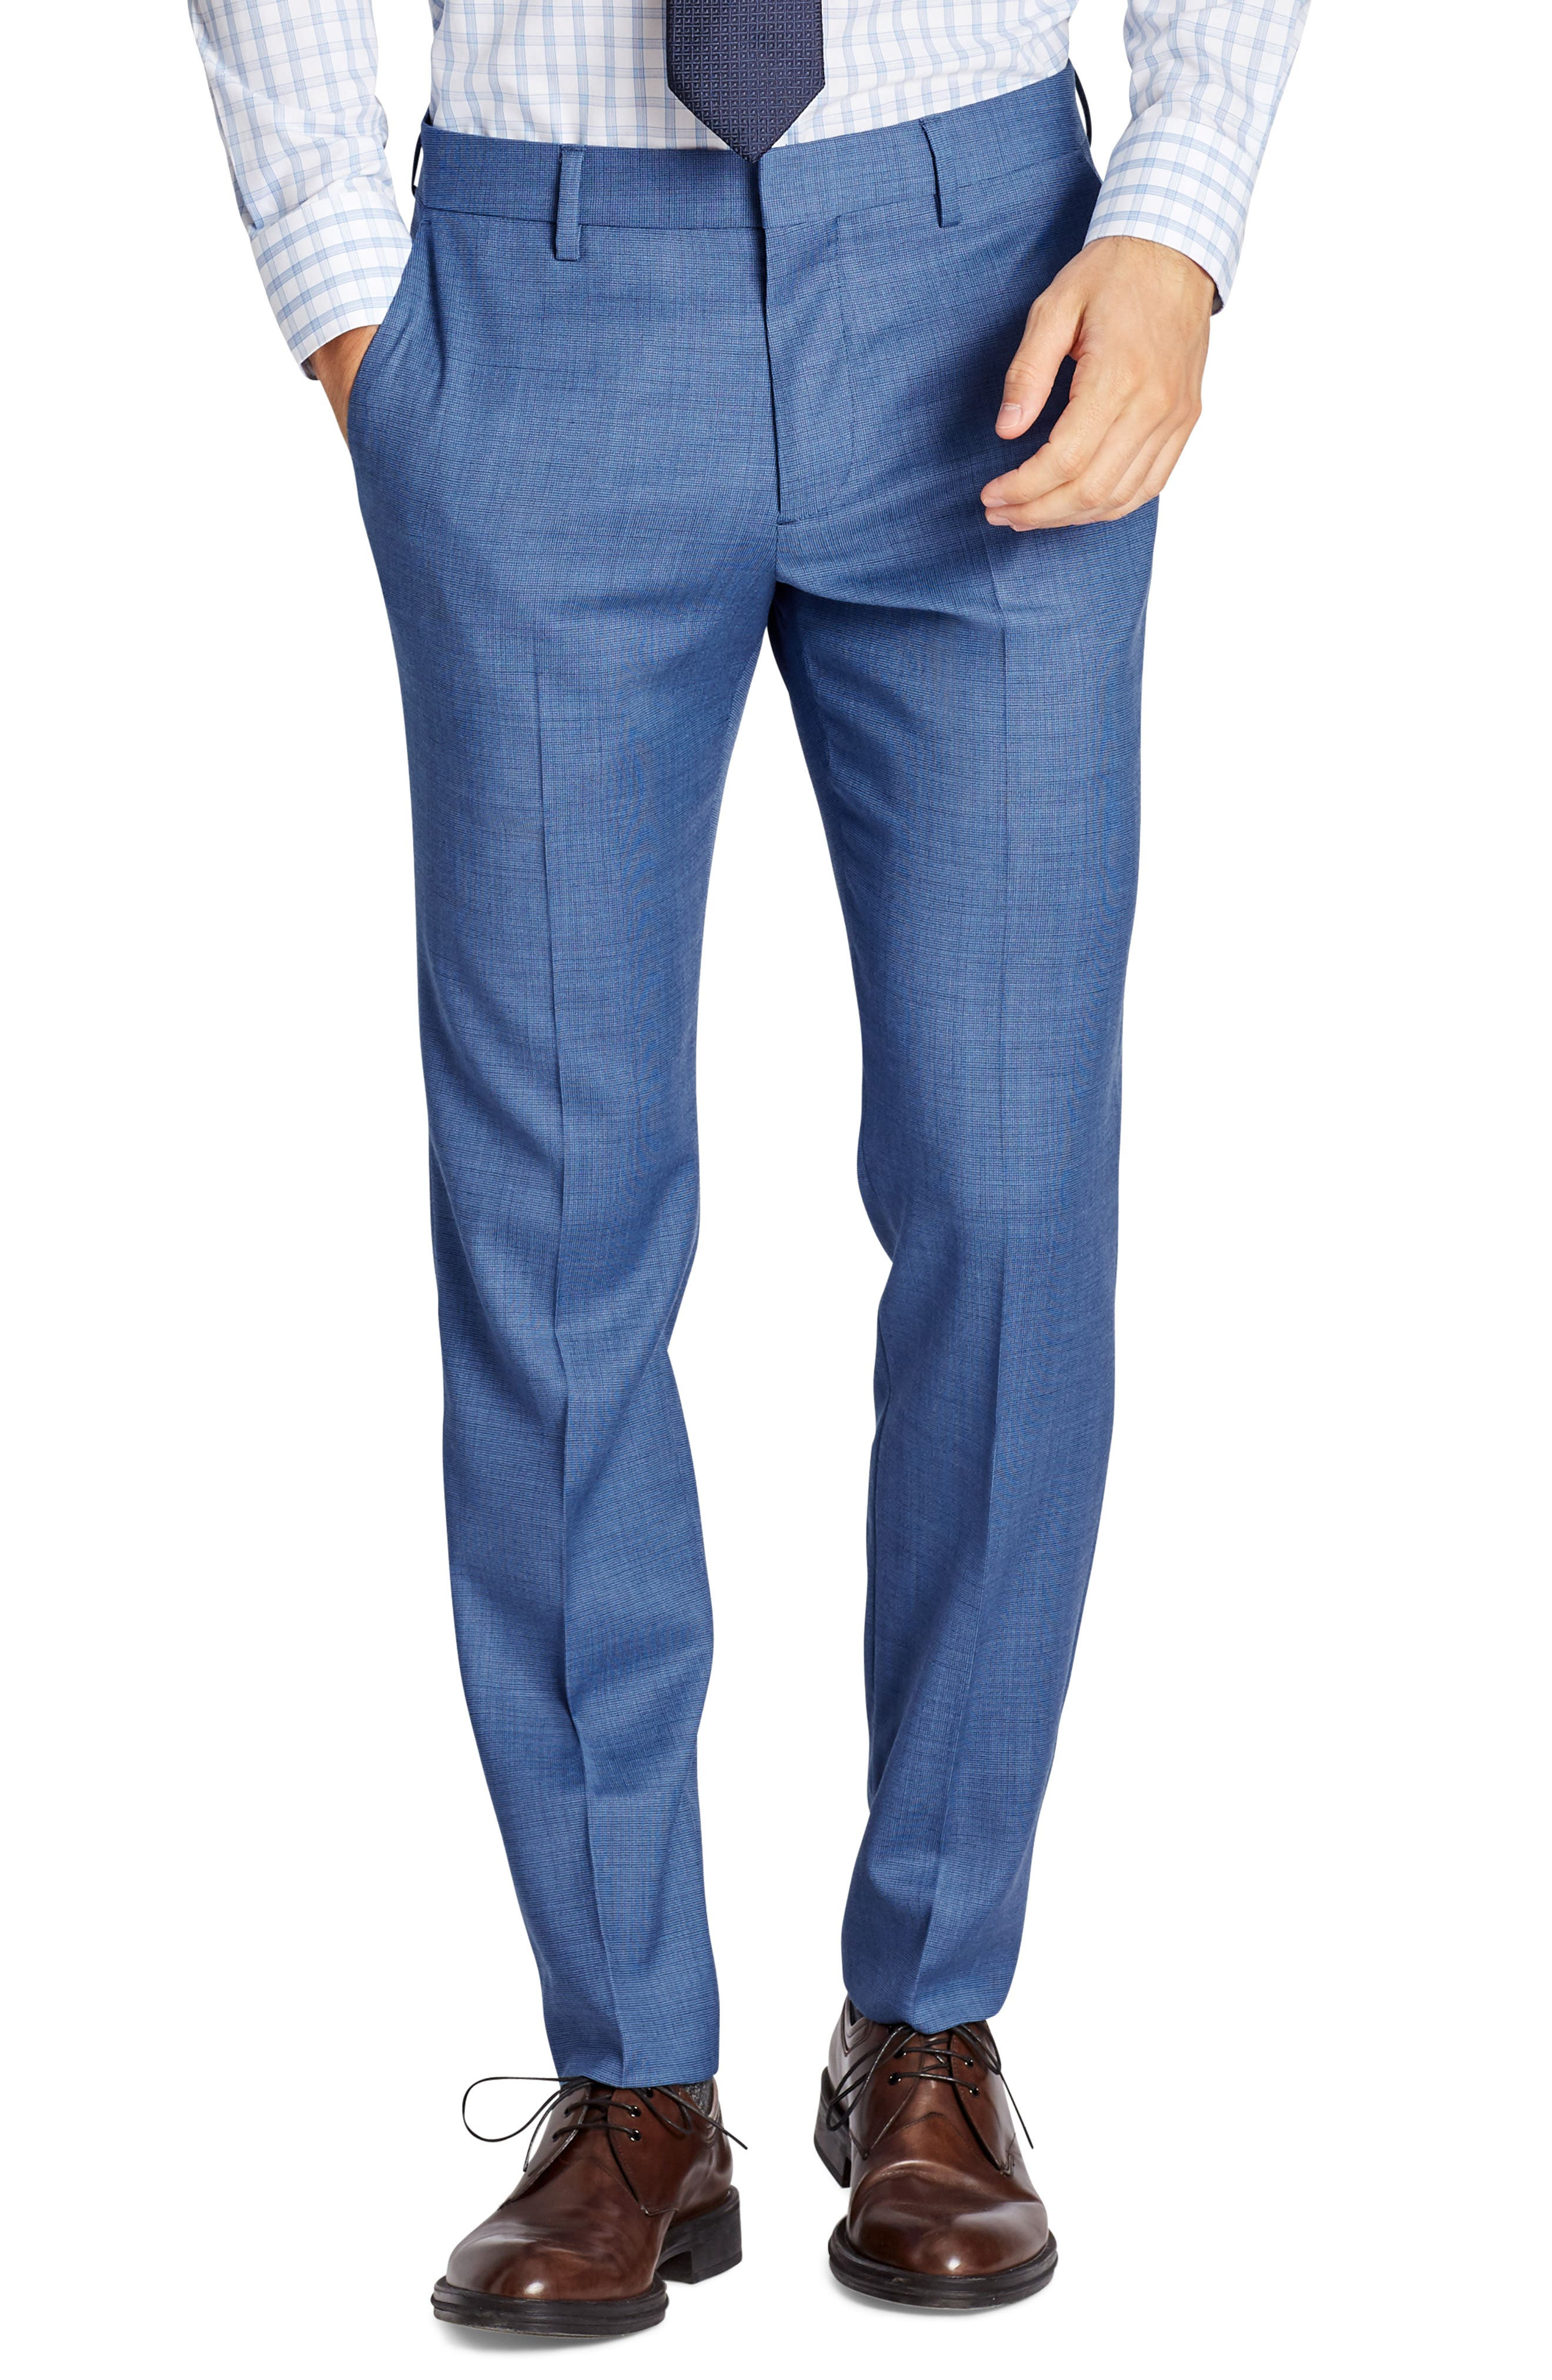 Main Image - Bonobos Jetsetter Flat Front Solid Stretch Wool Trousers